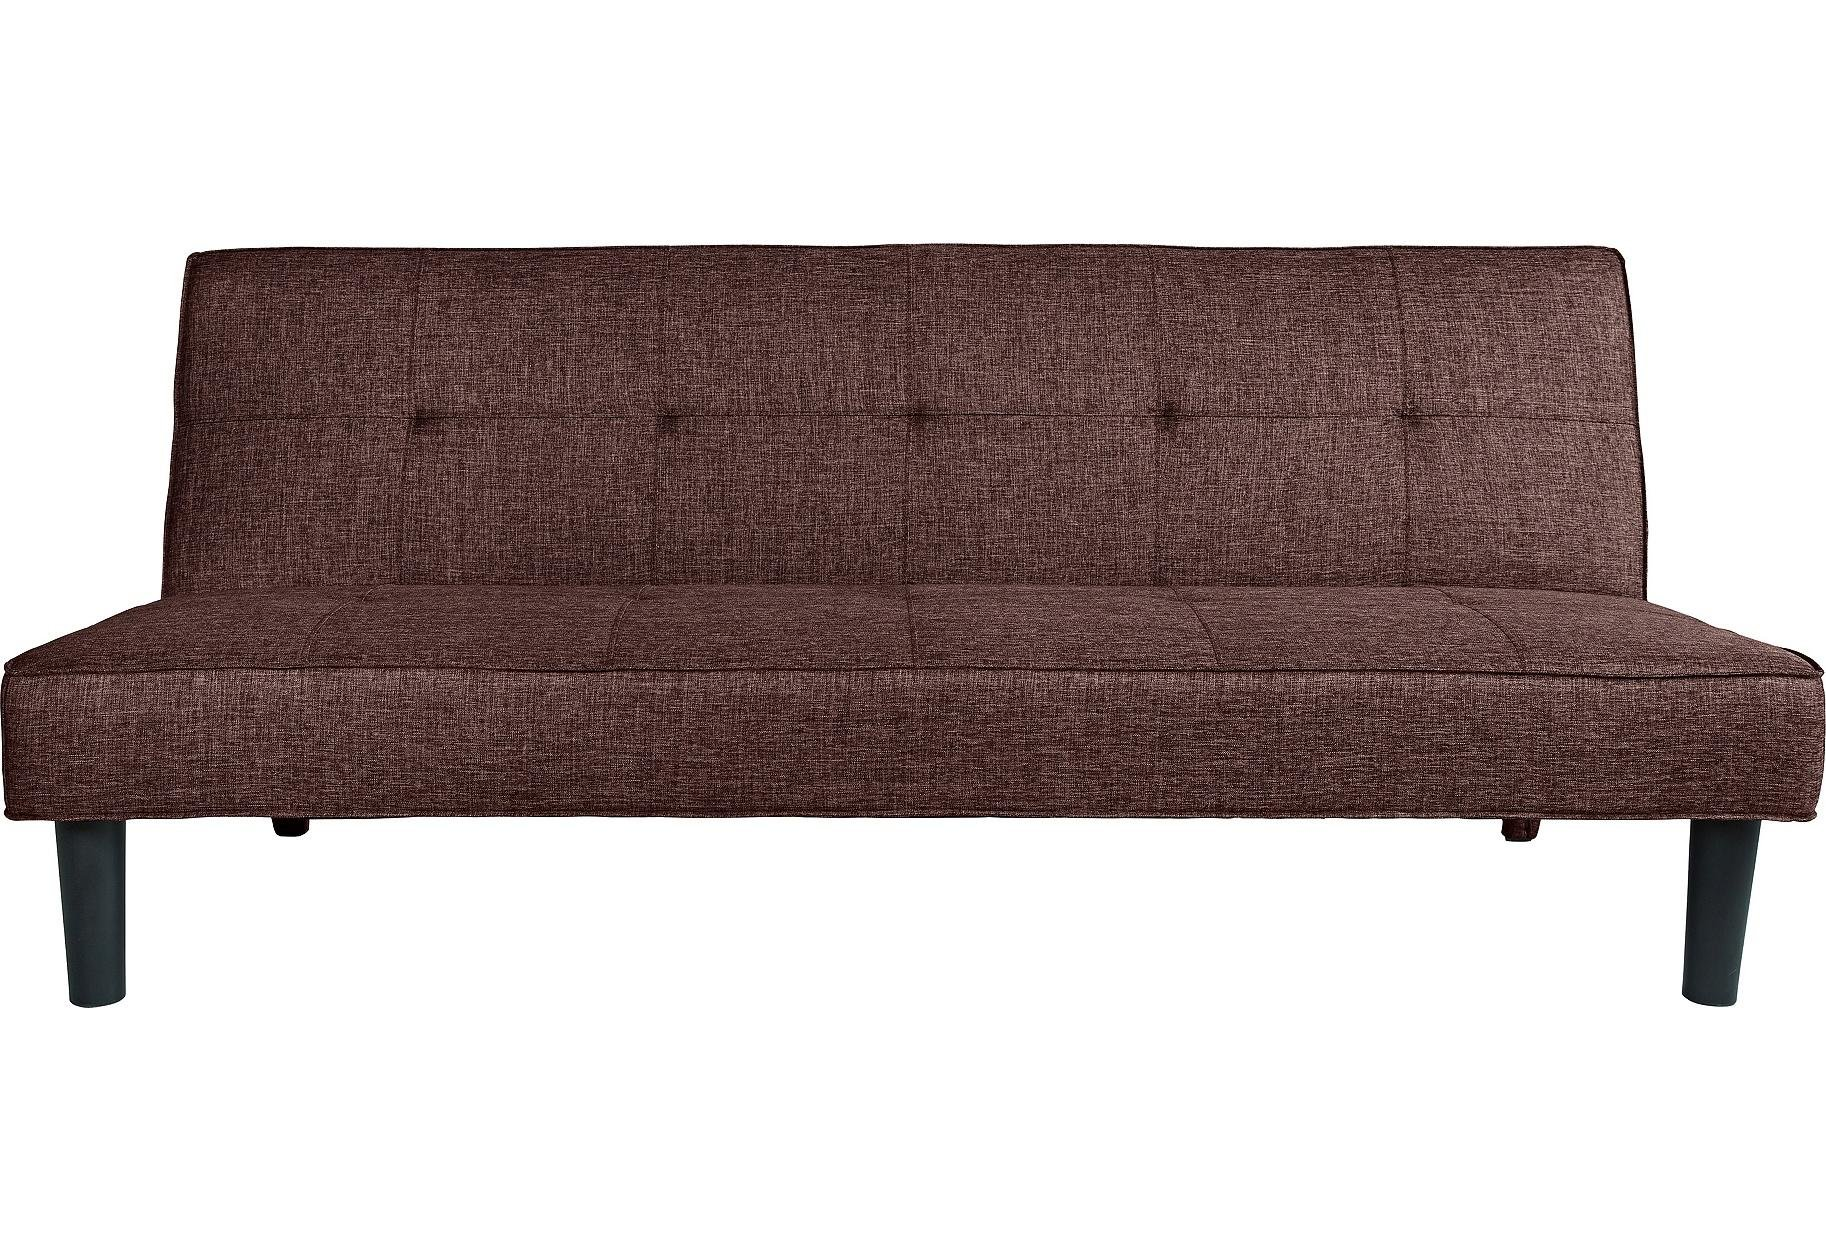 Habitat Patsy 2 Seater Fabric Clic Clac Sofa Bed - Brown